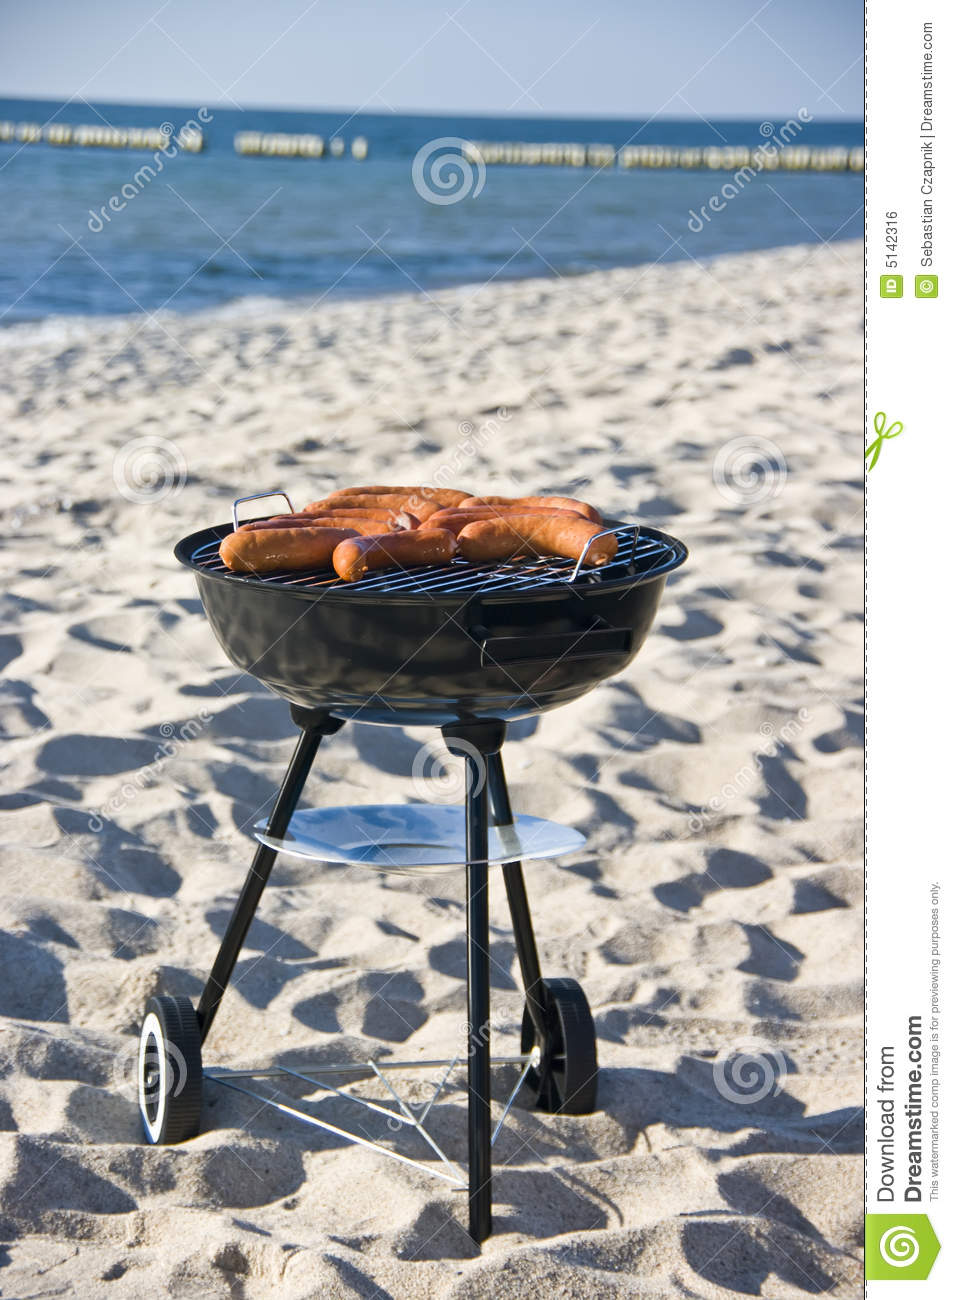 This tiny BBQ grill, super convenient for your taking to the beach, on a camping trip or anywhere you ninggifunan.ga this wonderful barbecue pretty much anywhere when going out with your family or friends.